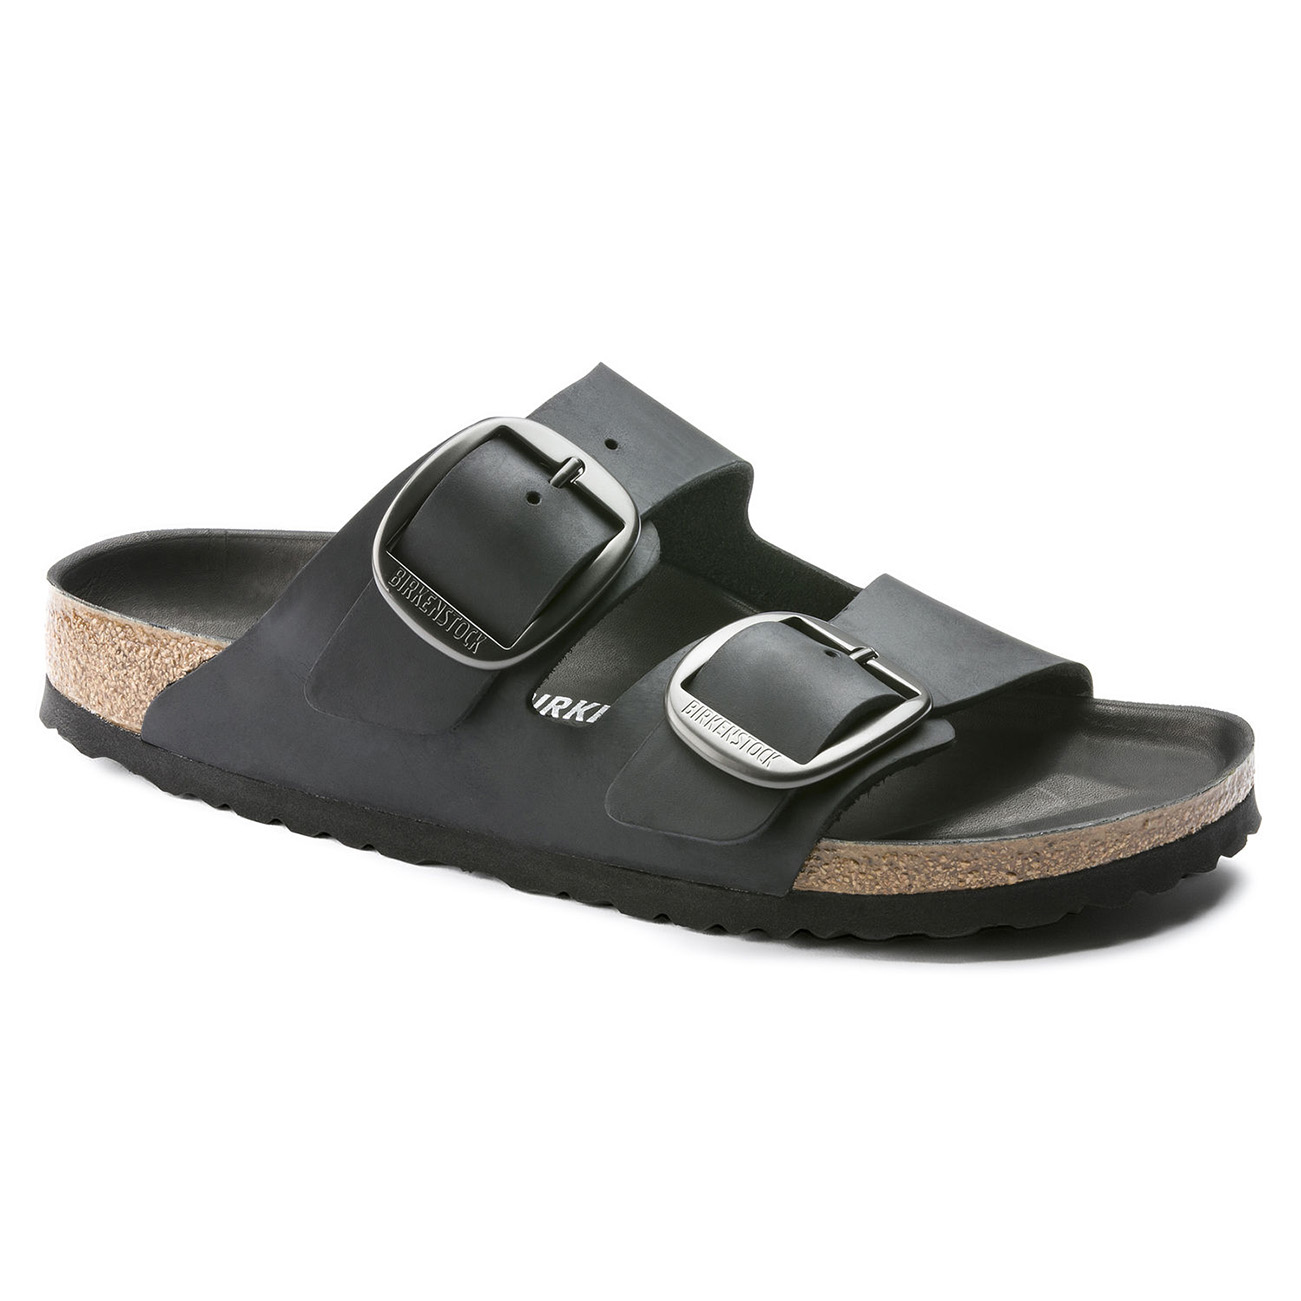 Birkenstock Arizona Big Buckle Sandal